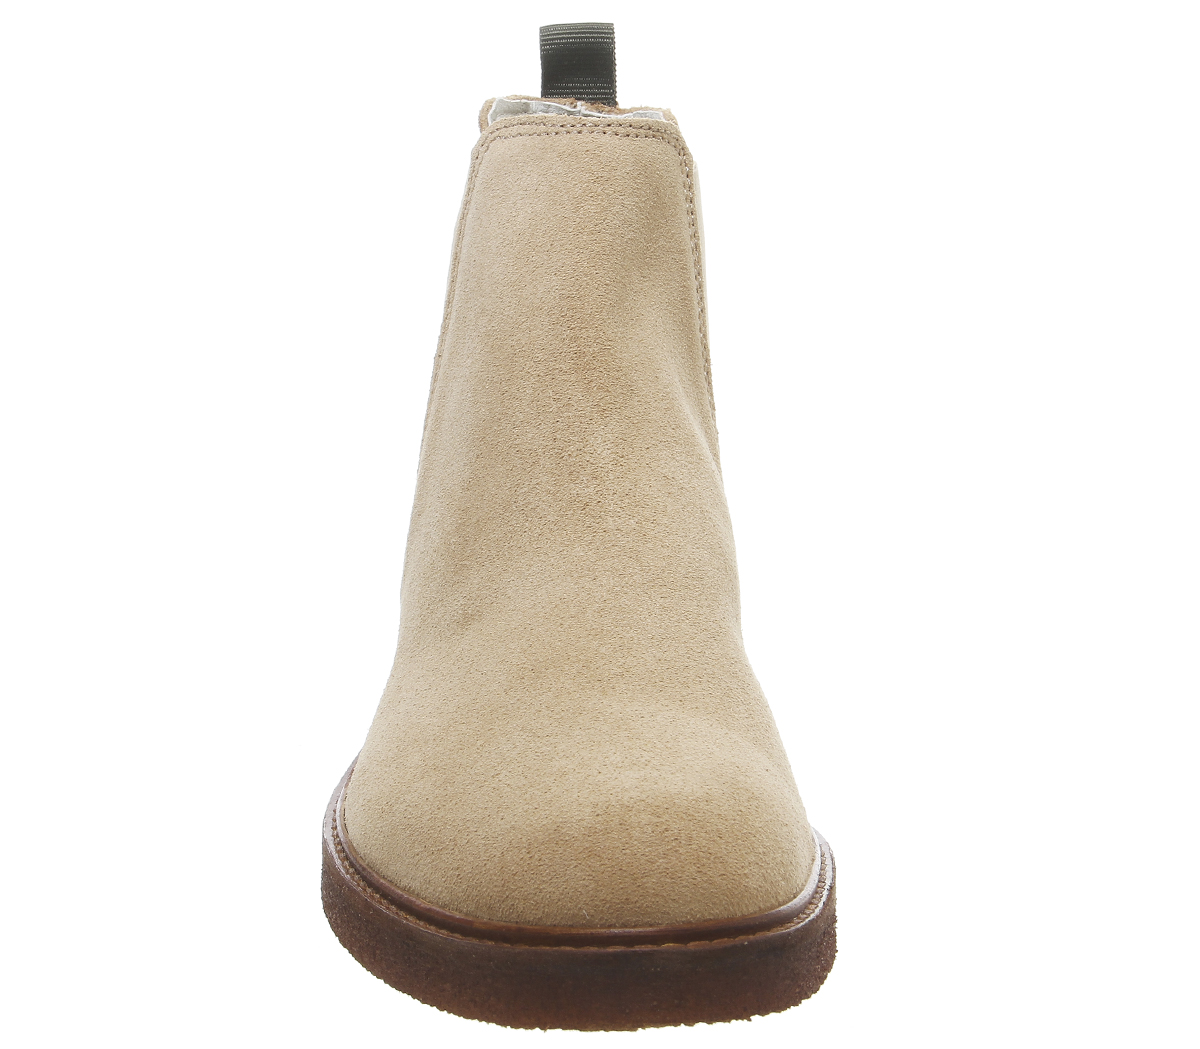 Mens-Office-Locked-Chelsea-Boots-Beige-Suede-Boots thumbnail 5